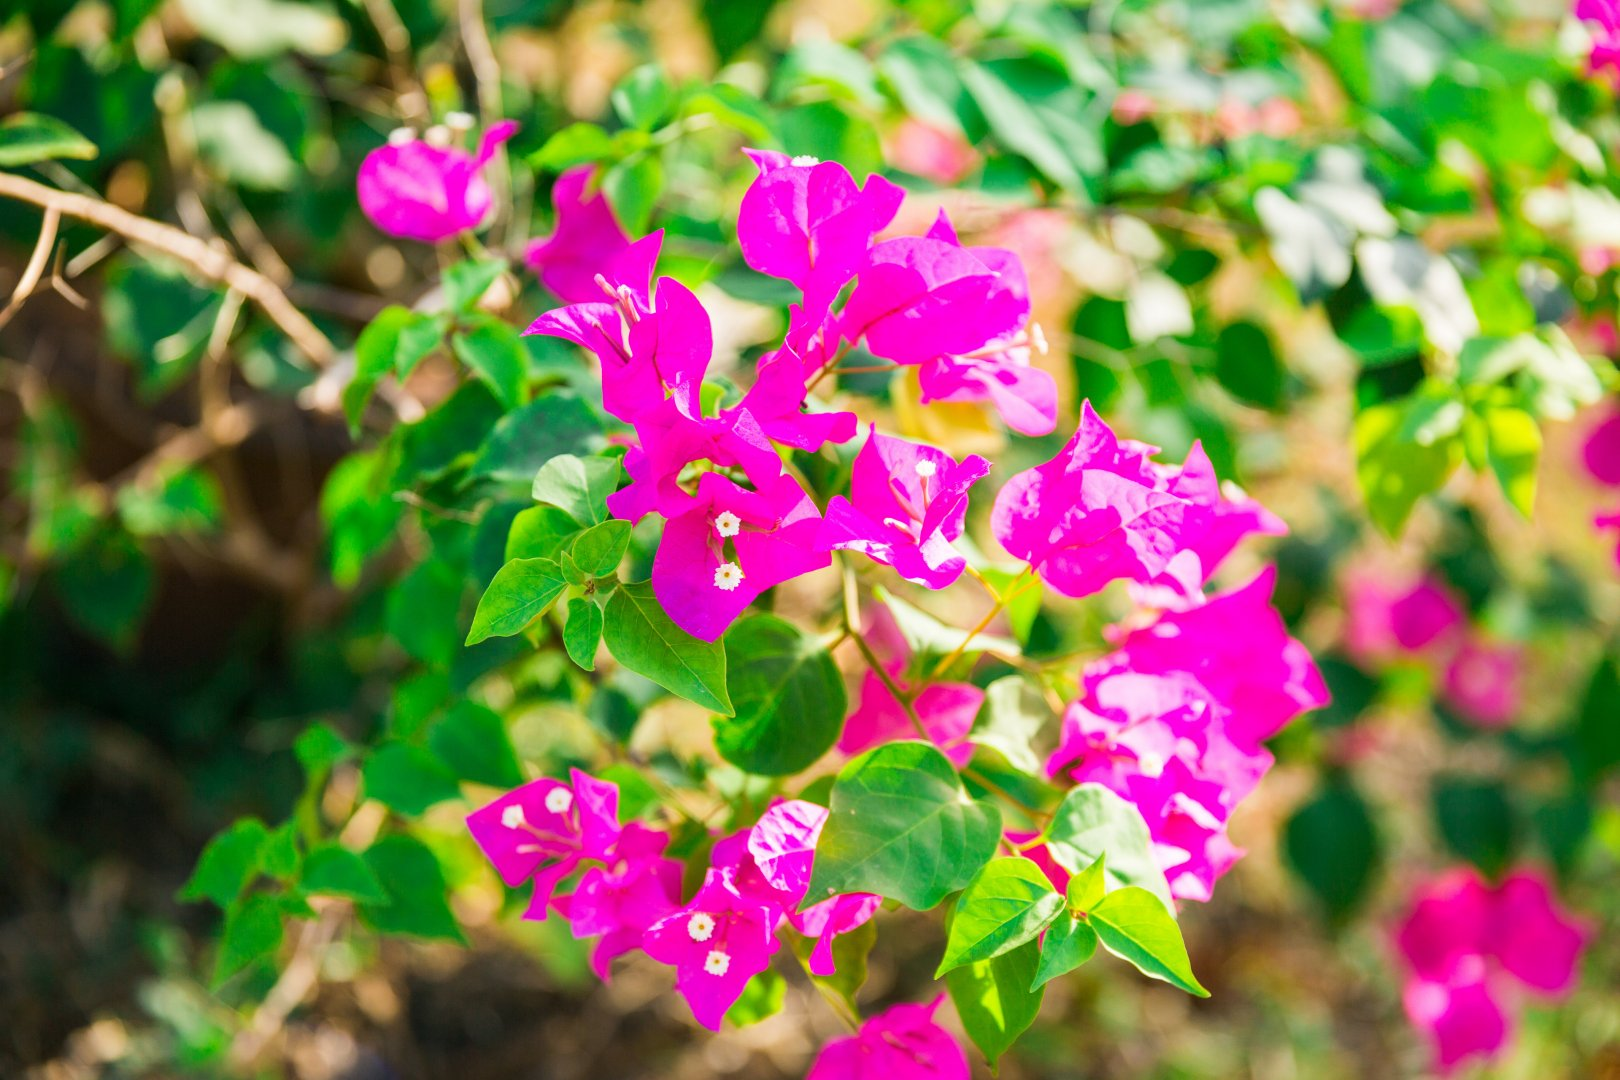 Flower Flowering plant Petal Plant Pink Magenta Bougainvillea Wildflower Dianthus Groundcover Annual plant Pink family Four o'clock family Loosestrife and pomegranate family Perennial plant